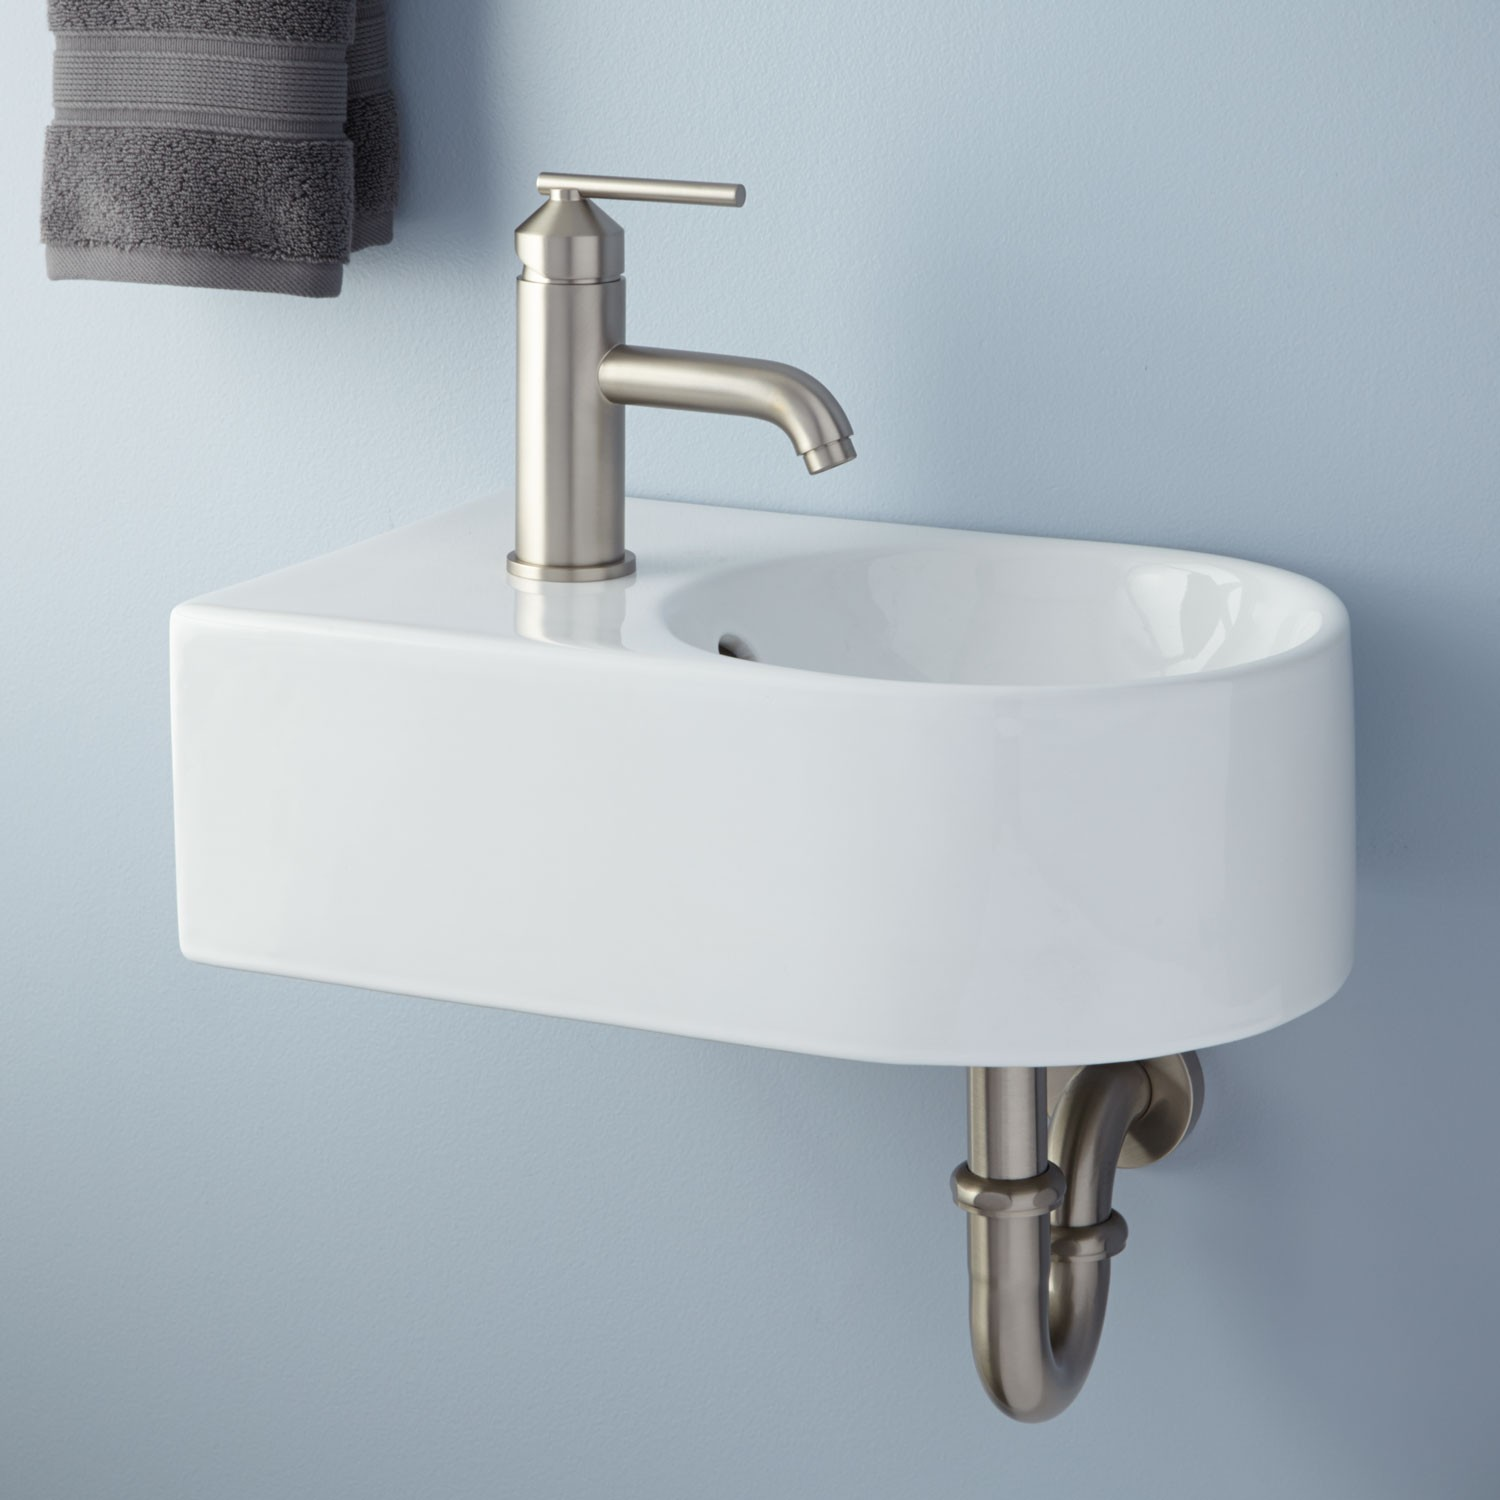 Small wall mounted bathroom sinks - Small Wall Mounted Sink Idea With Brushed Iron Faucet